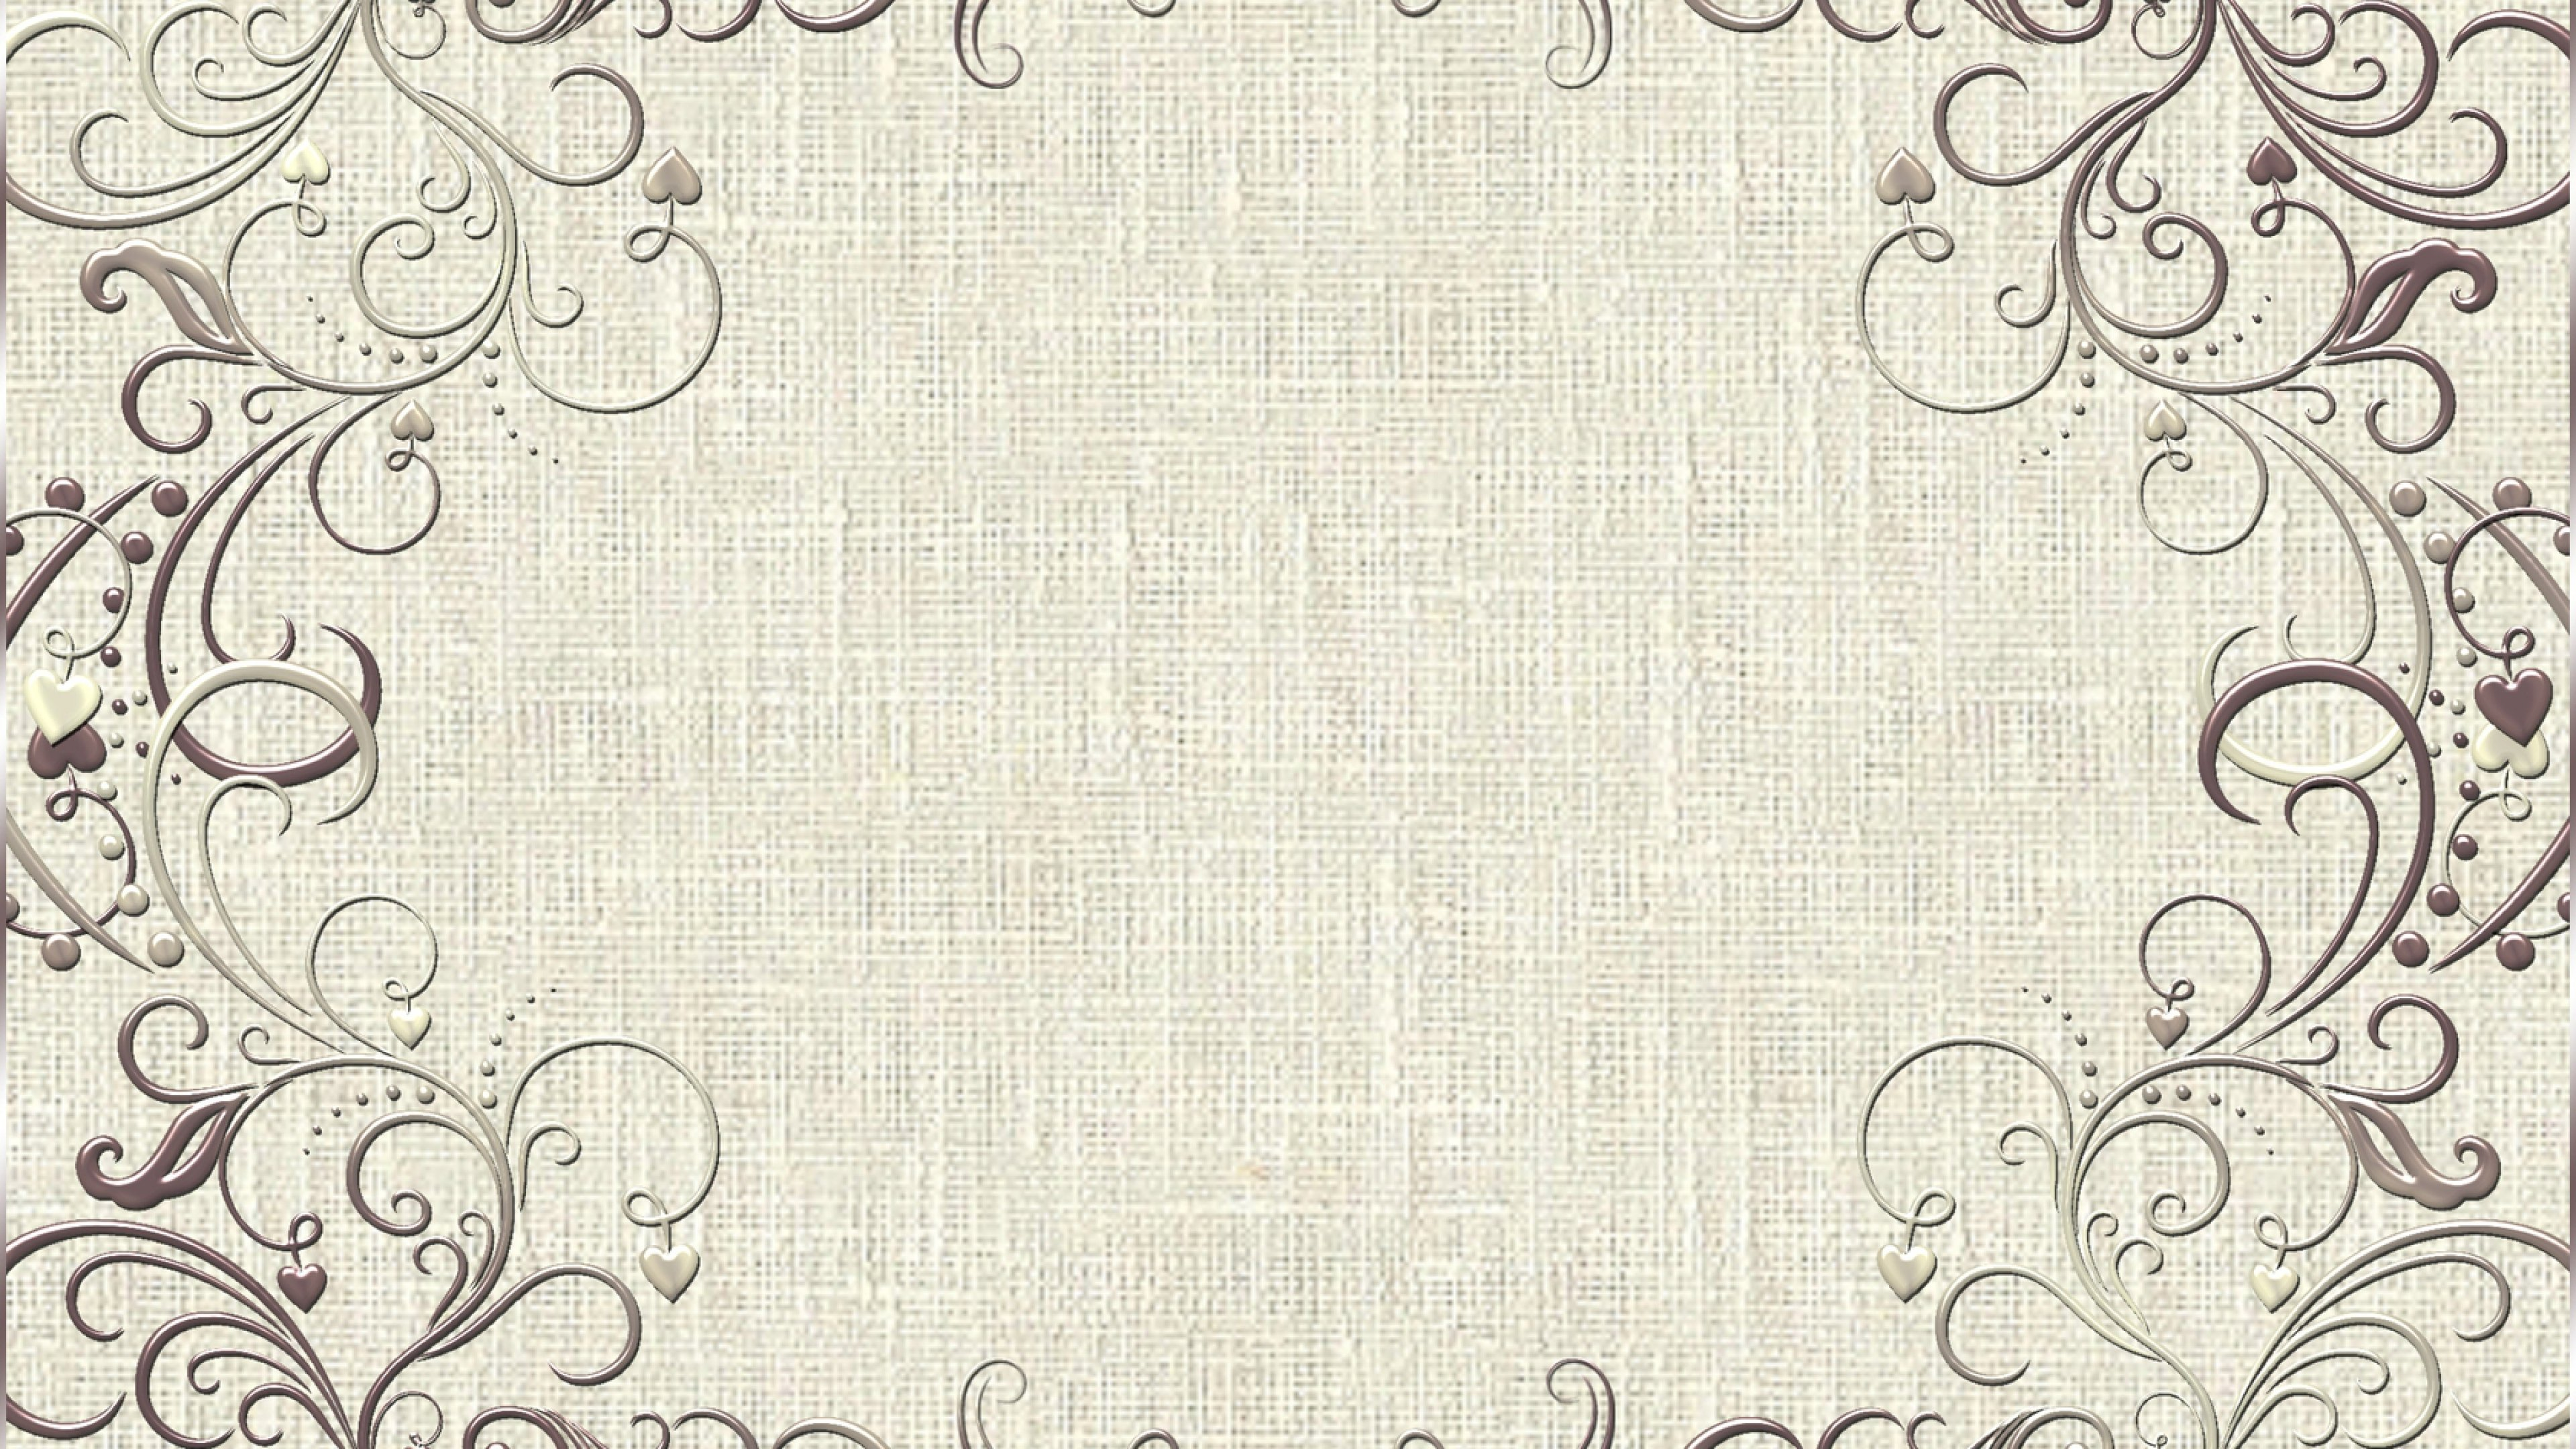 vintage frame design pattern wallpaper wallpapers byte align center 3840x2160